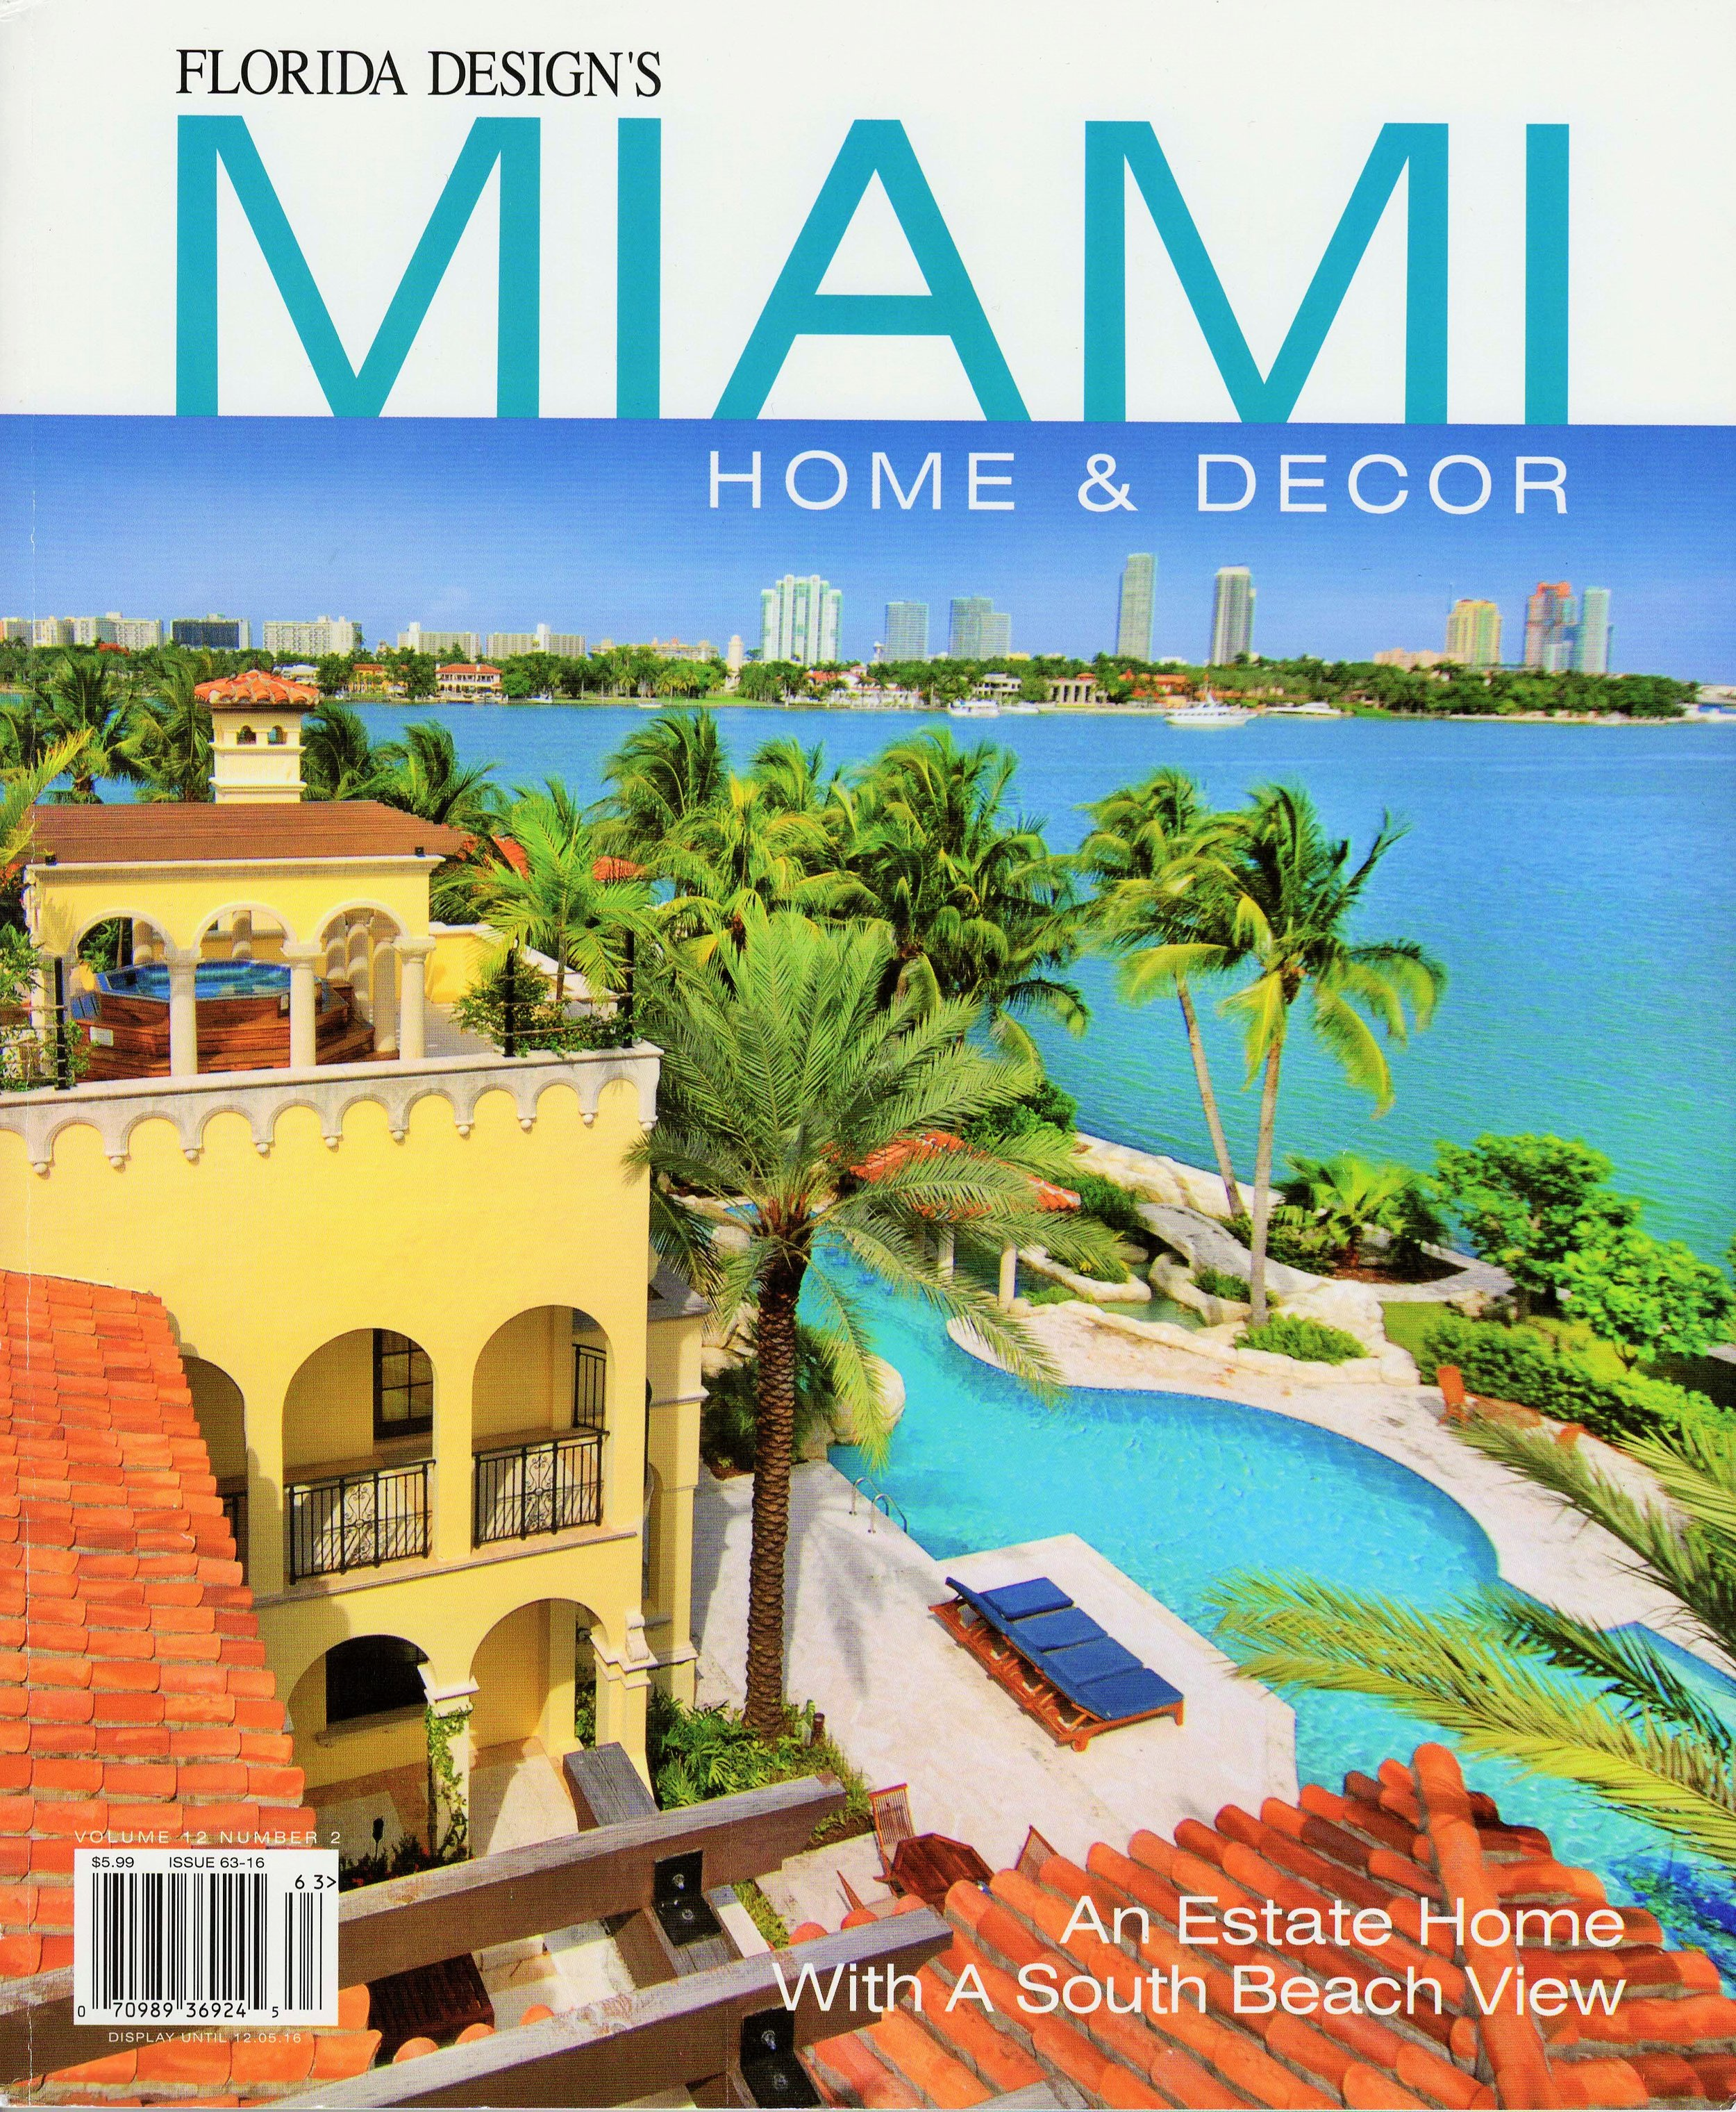 Miami Home & Decor Magazine